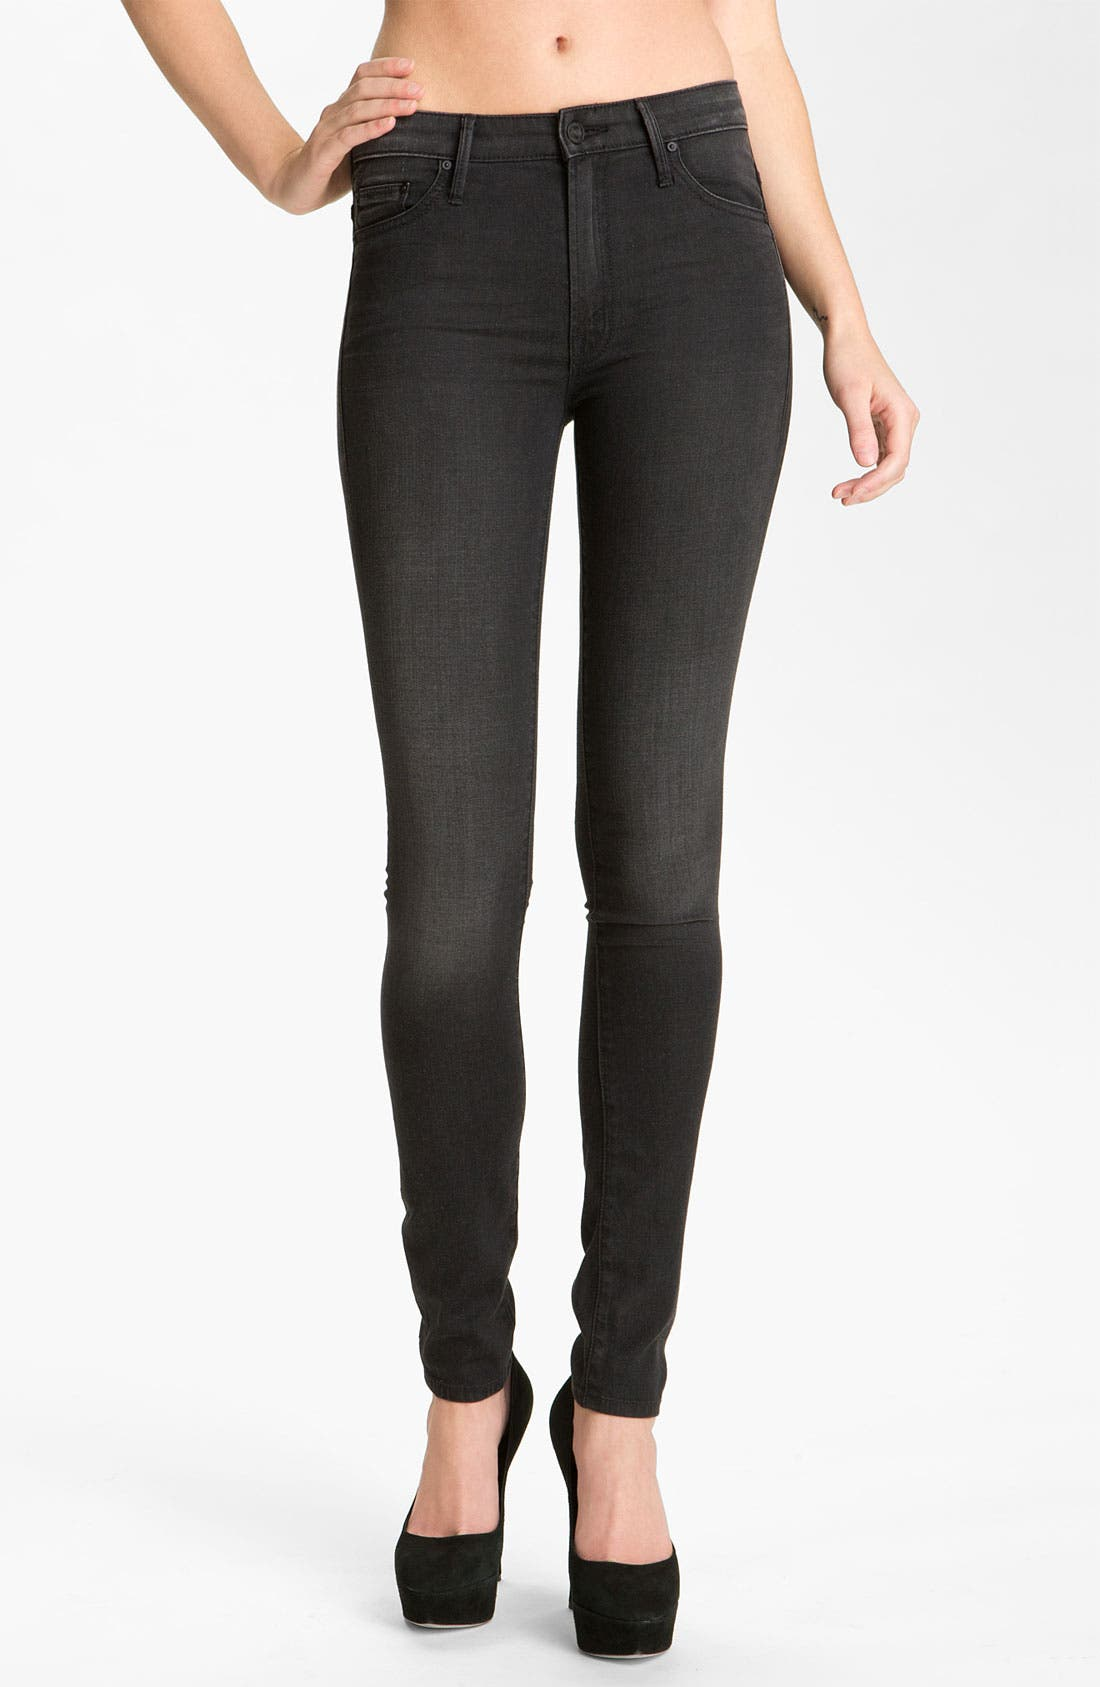 MOTHER, 'The Looker' Skinny Stretch Jeans, Main thumbnail 1, color, 001